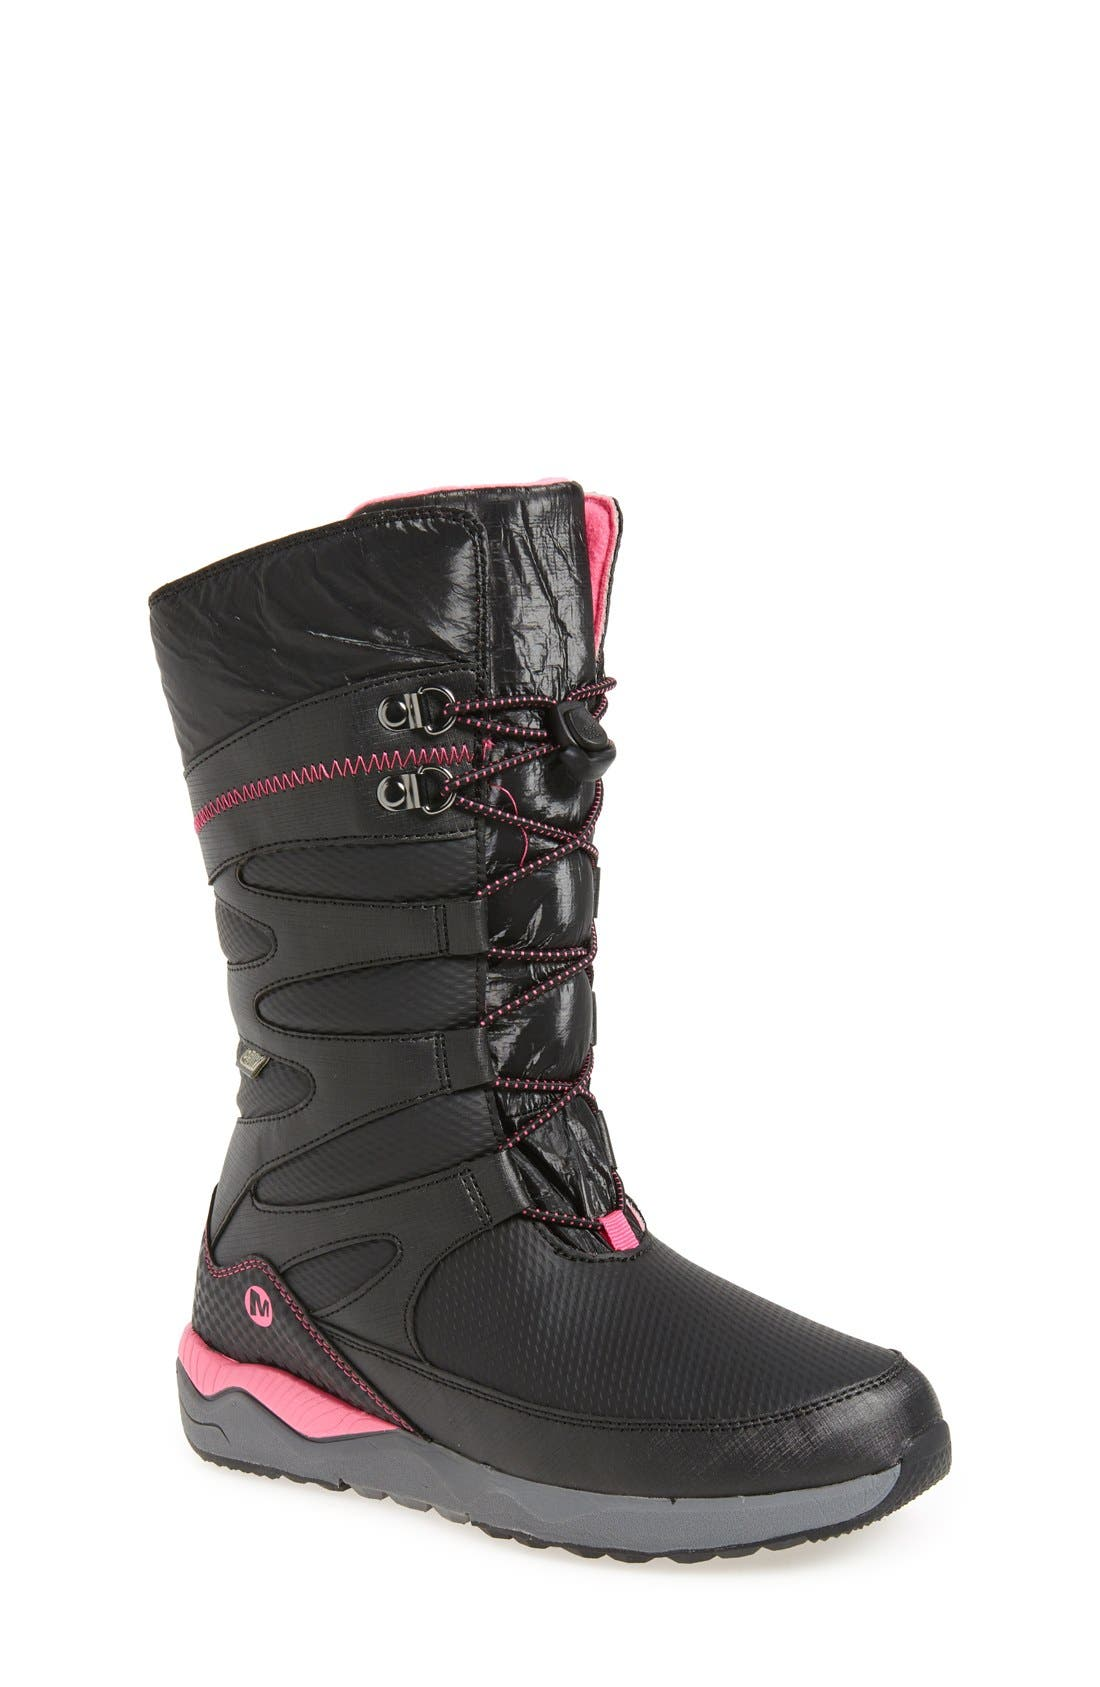 Main Image - Merrell 'Arctic Blast' Waterproof Snow Boot (Toddler, Little Kid & Big Kid)